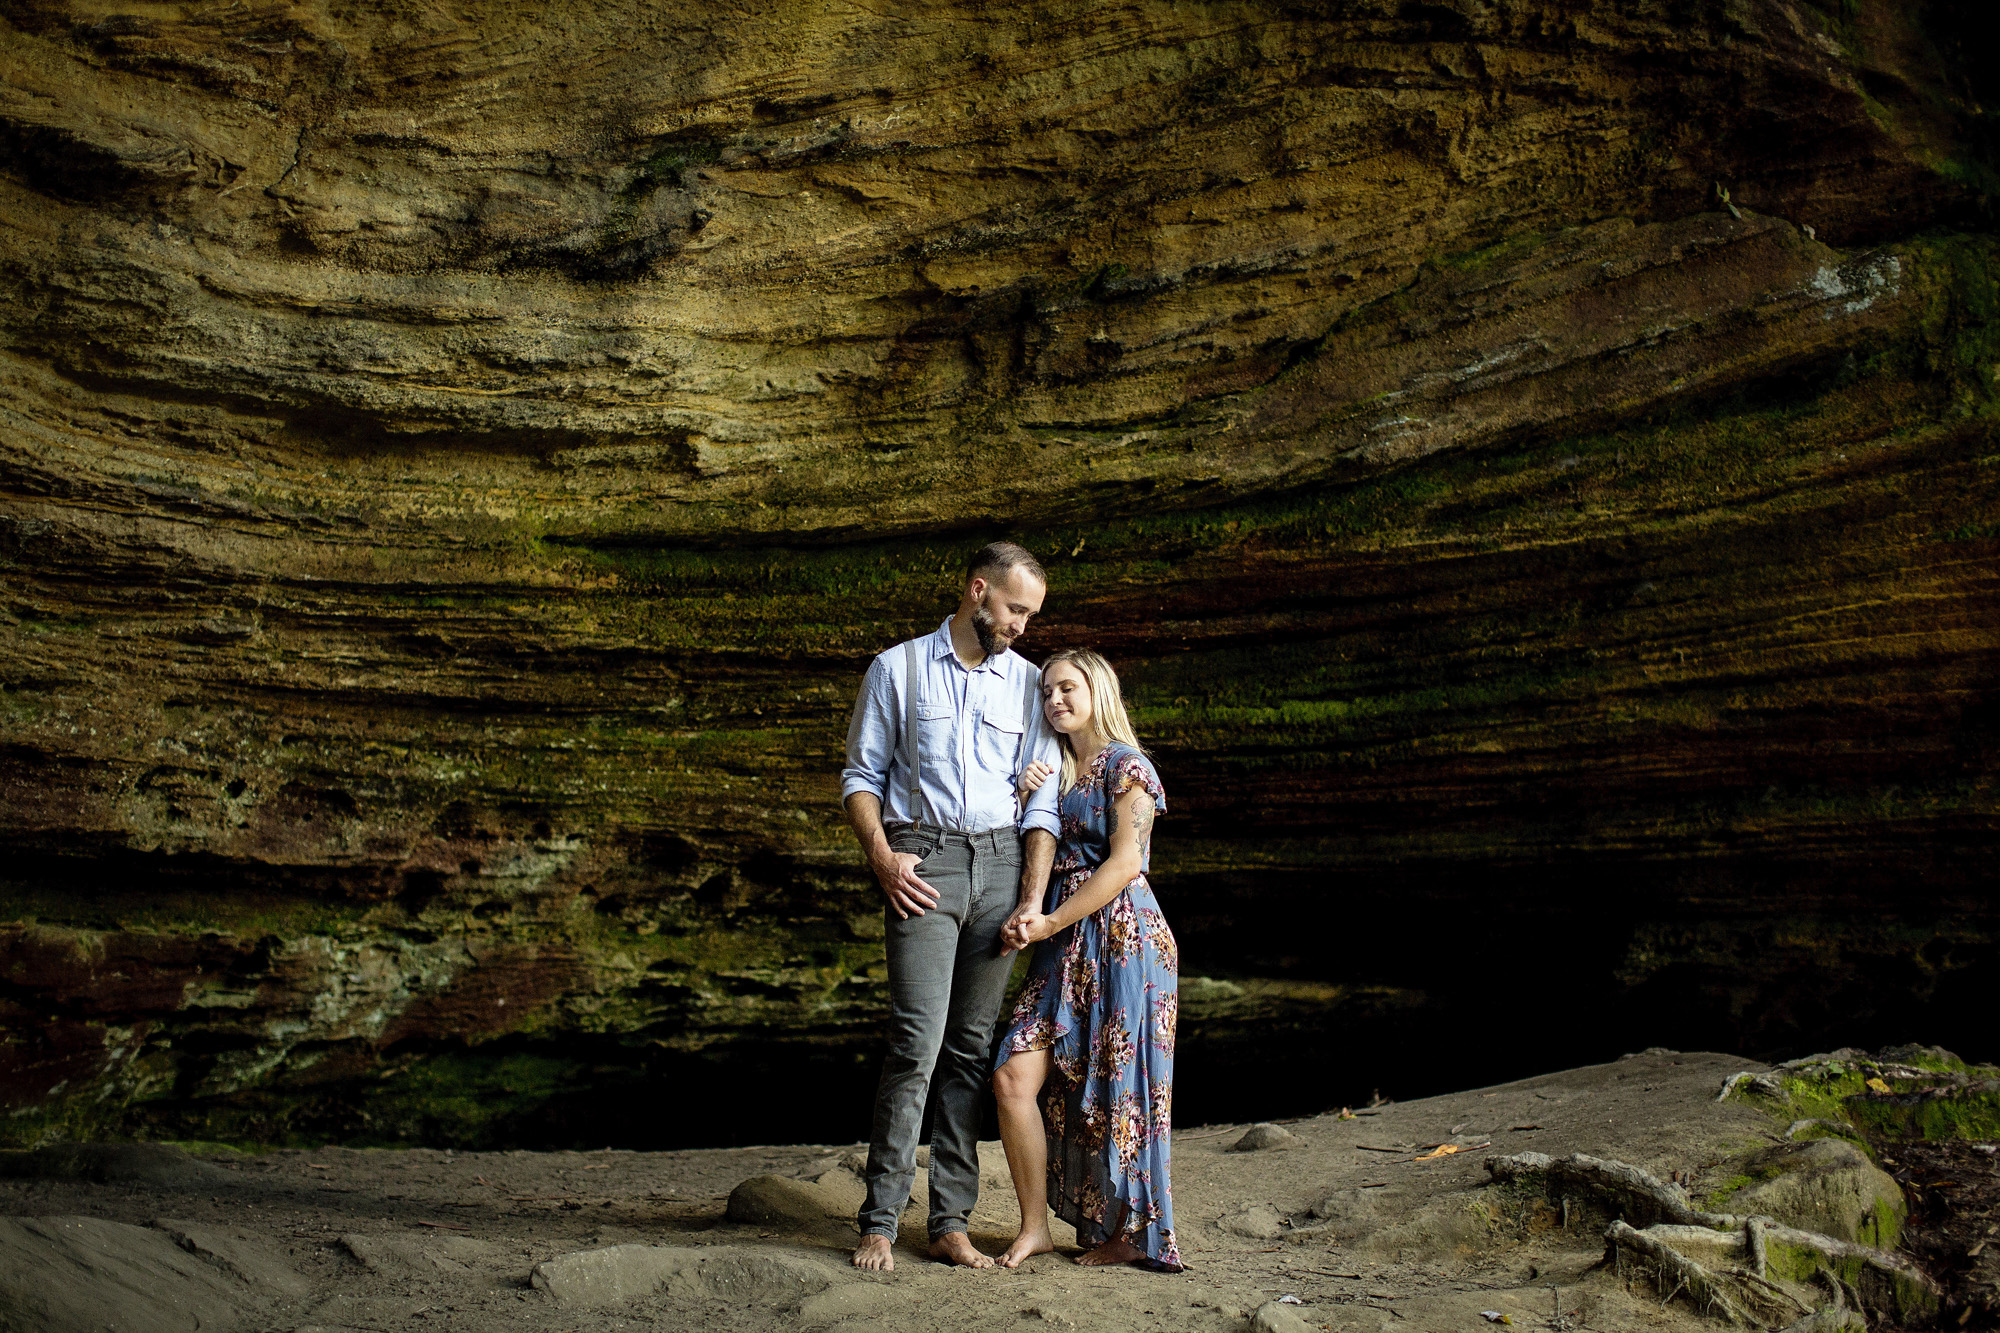 Seriously_Sabrina_Photography_Red_River_Gorge_Engagement_Session_Monika_Steven_11.jpg